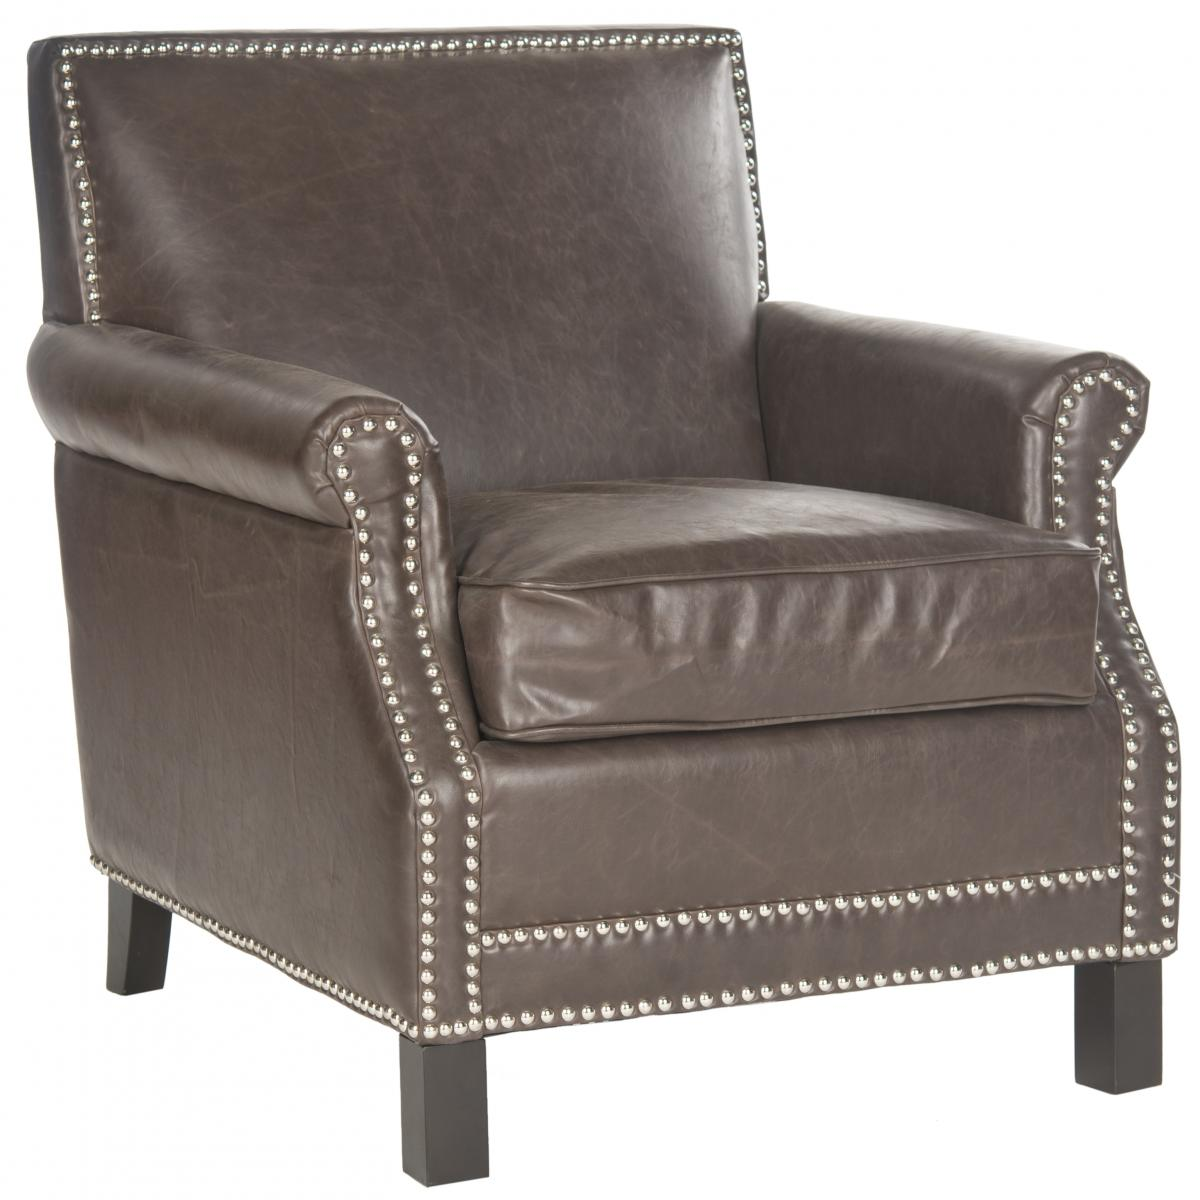 Safavieh - MCR4572E EASTON CLUB CHAIR - ANTIQUE BROWN